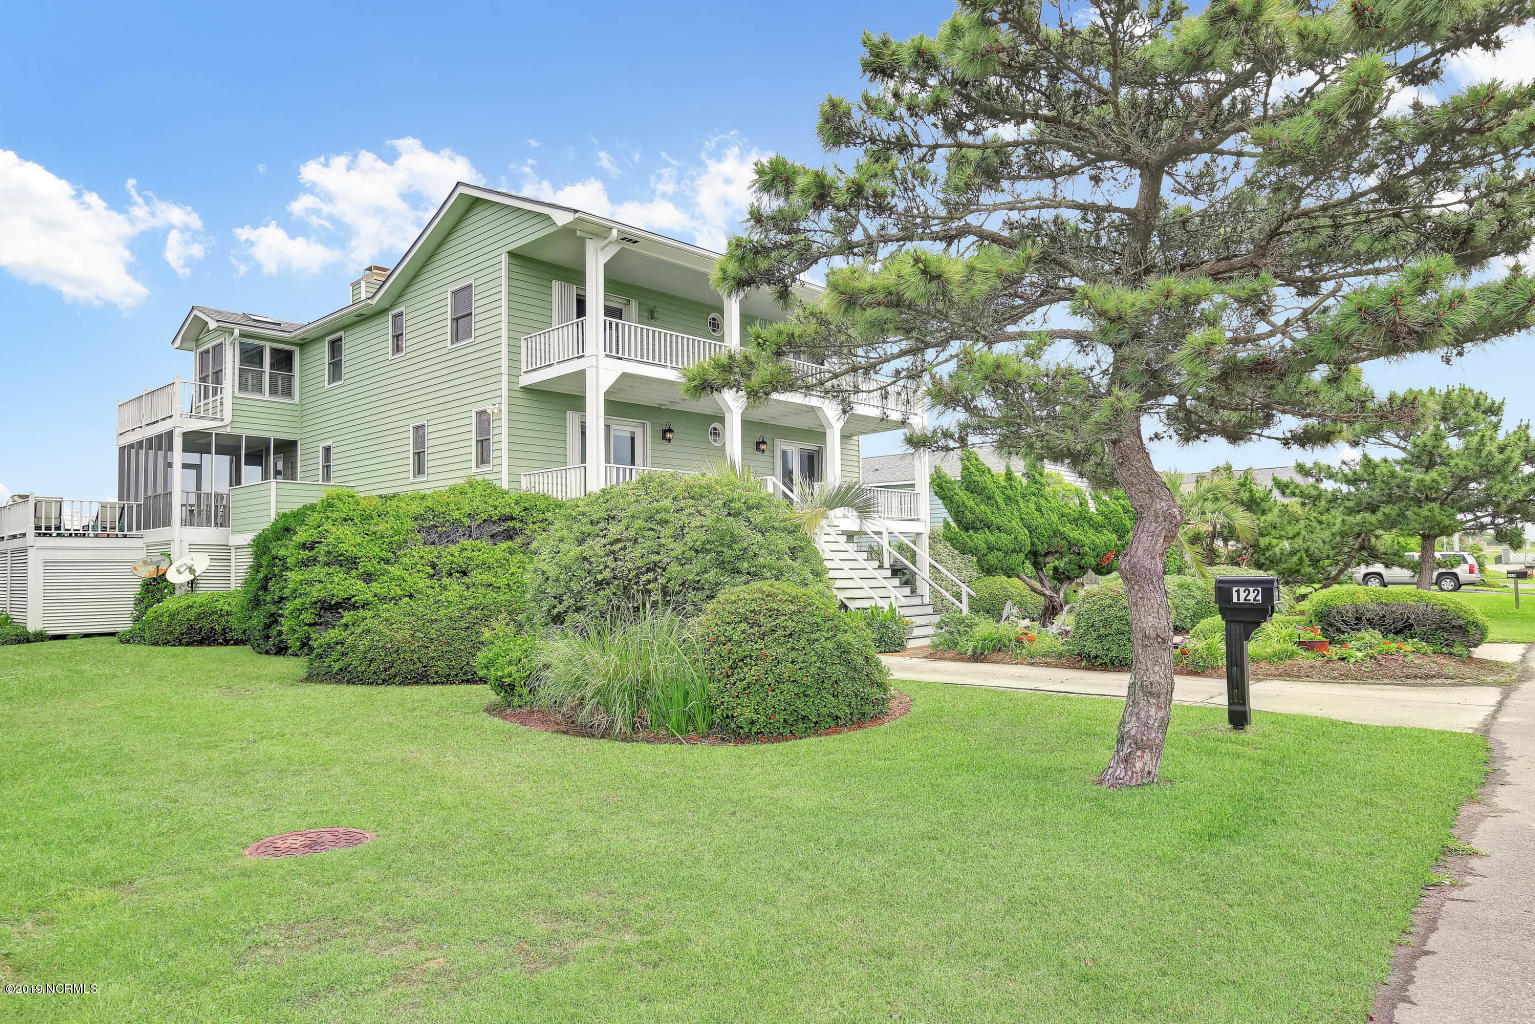 122 Caswell Beach Road Oak Island, NC 28465